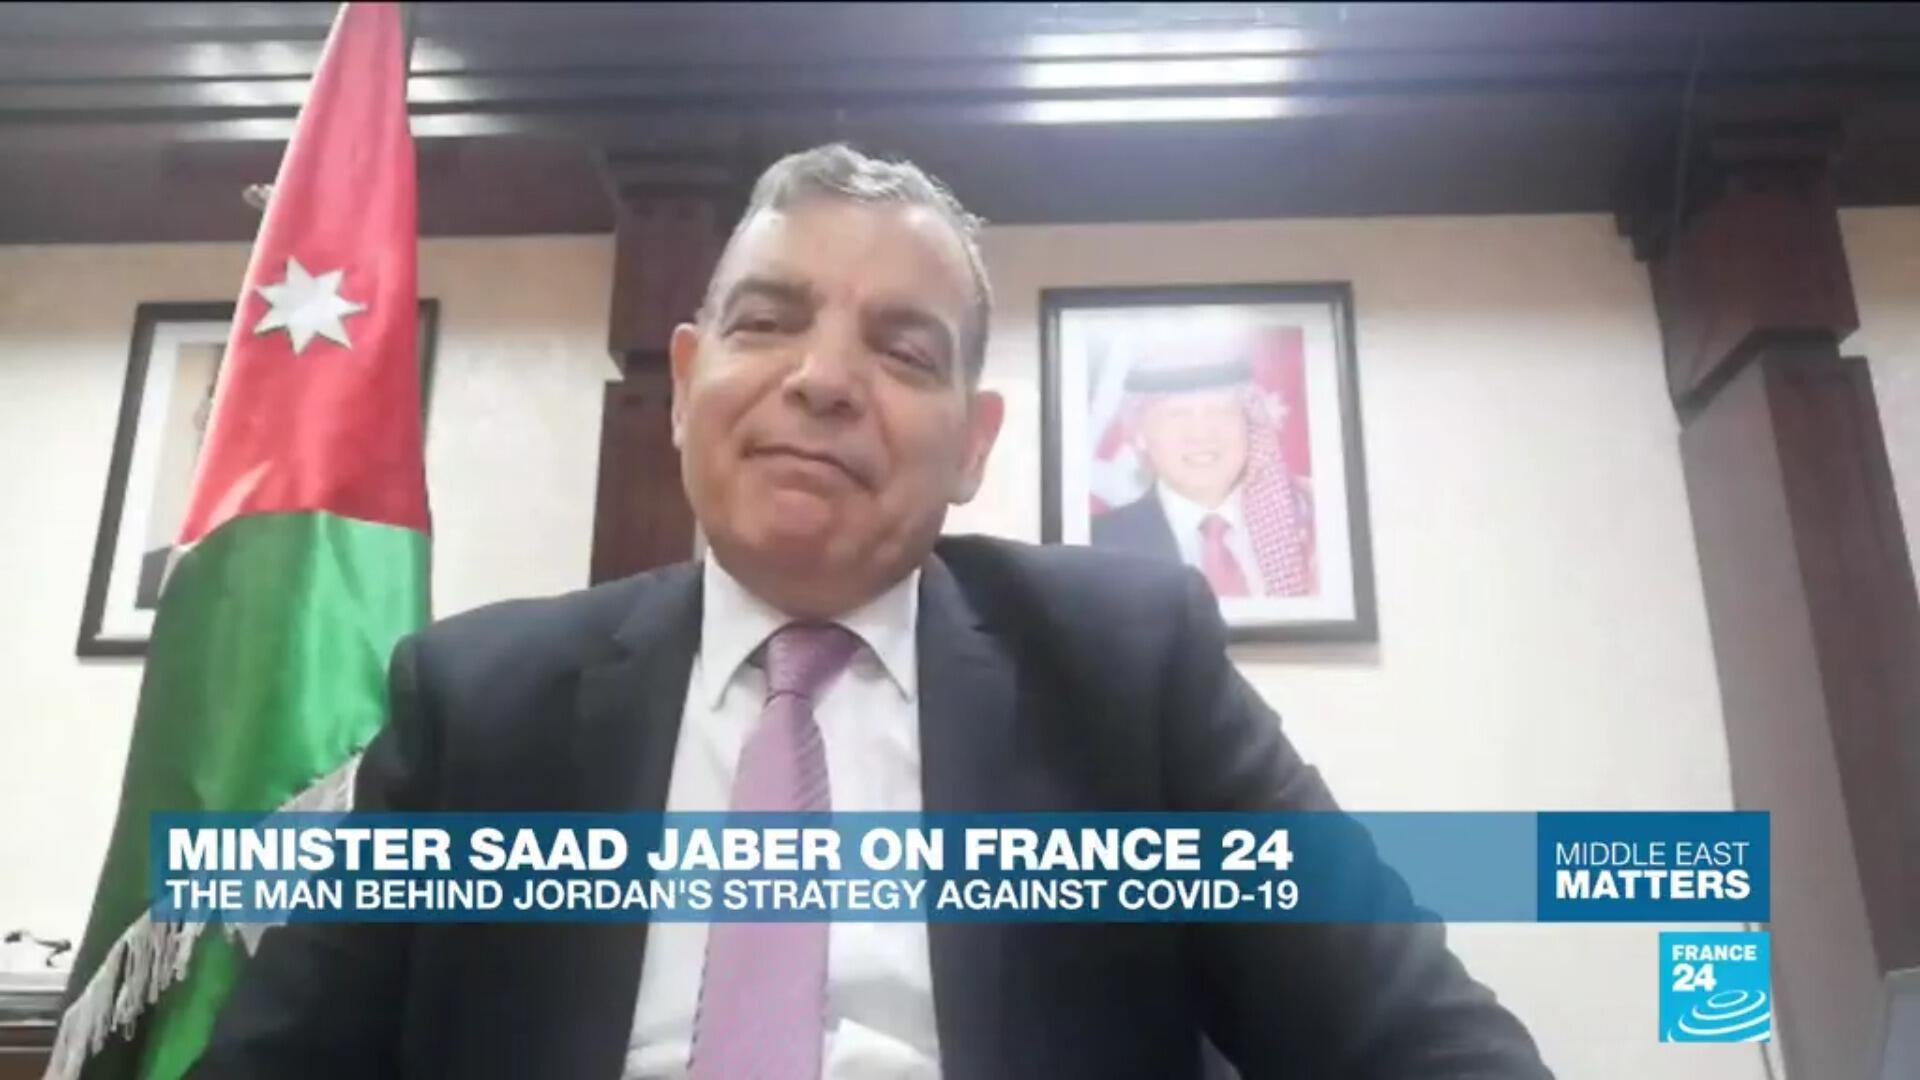 MIDDLE EAST MATTERS 0428